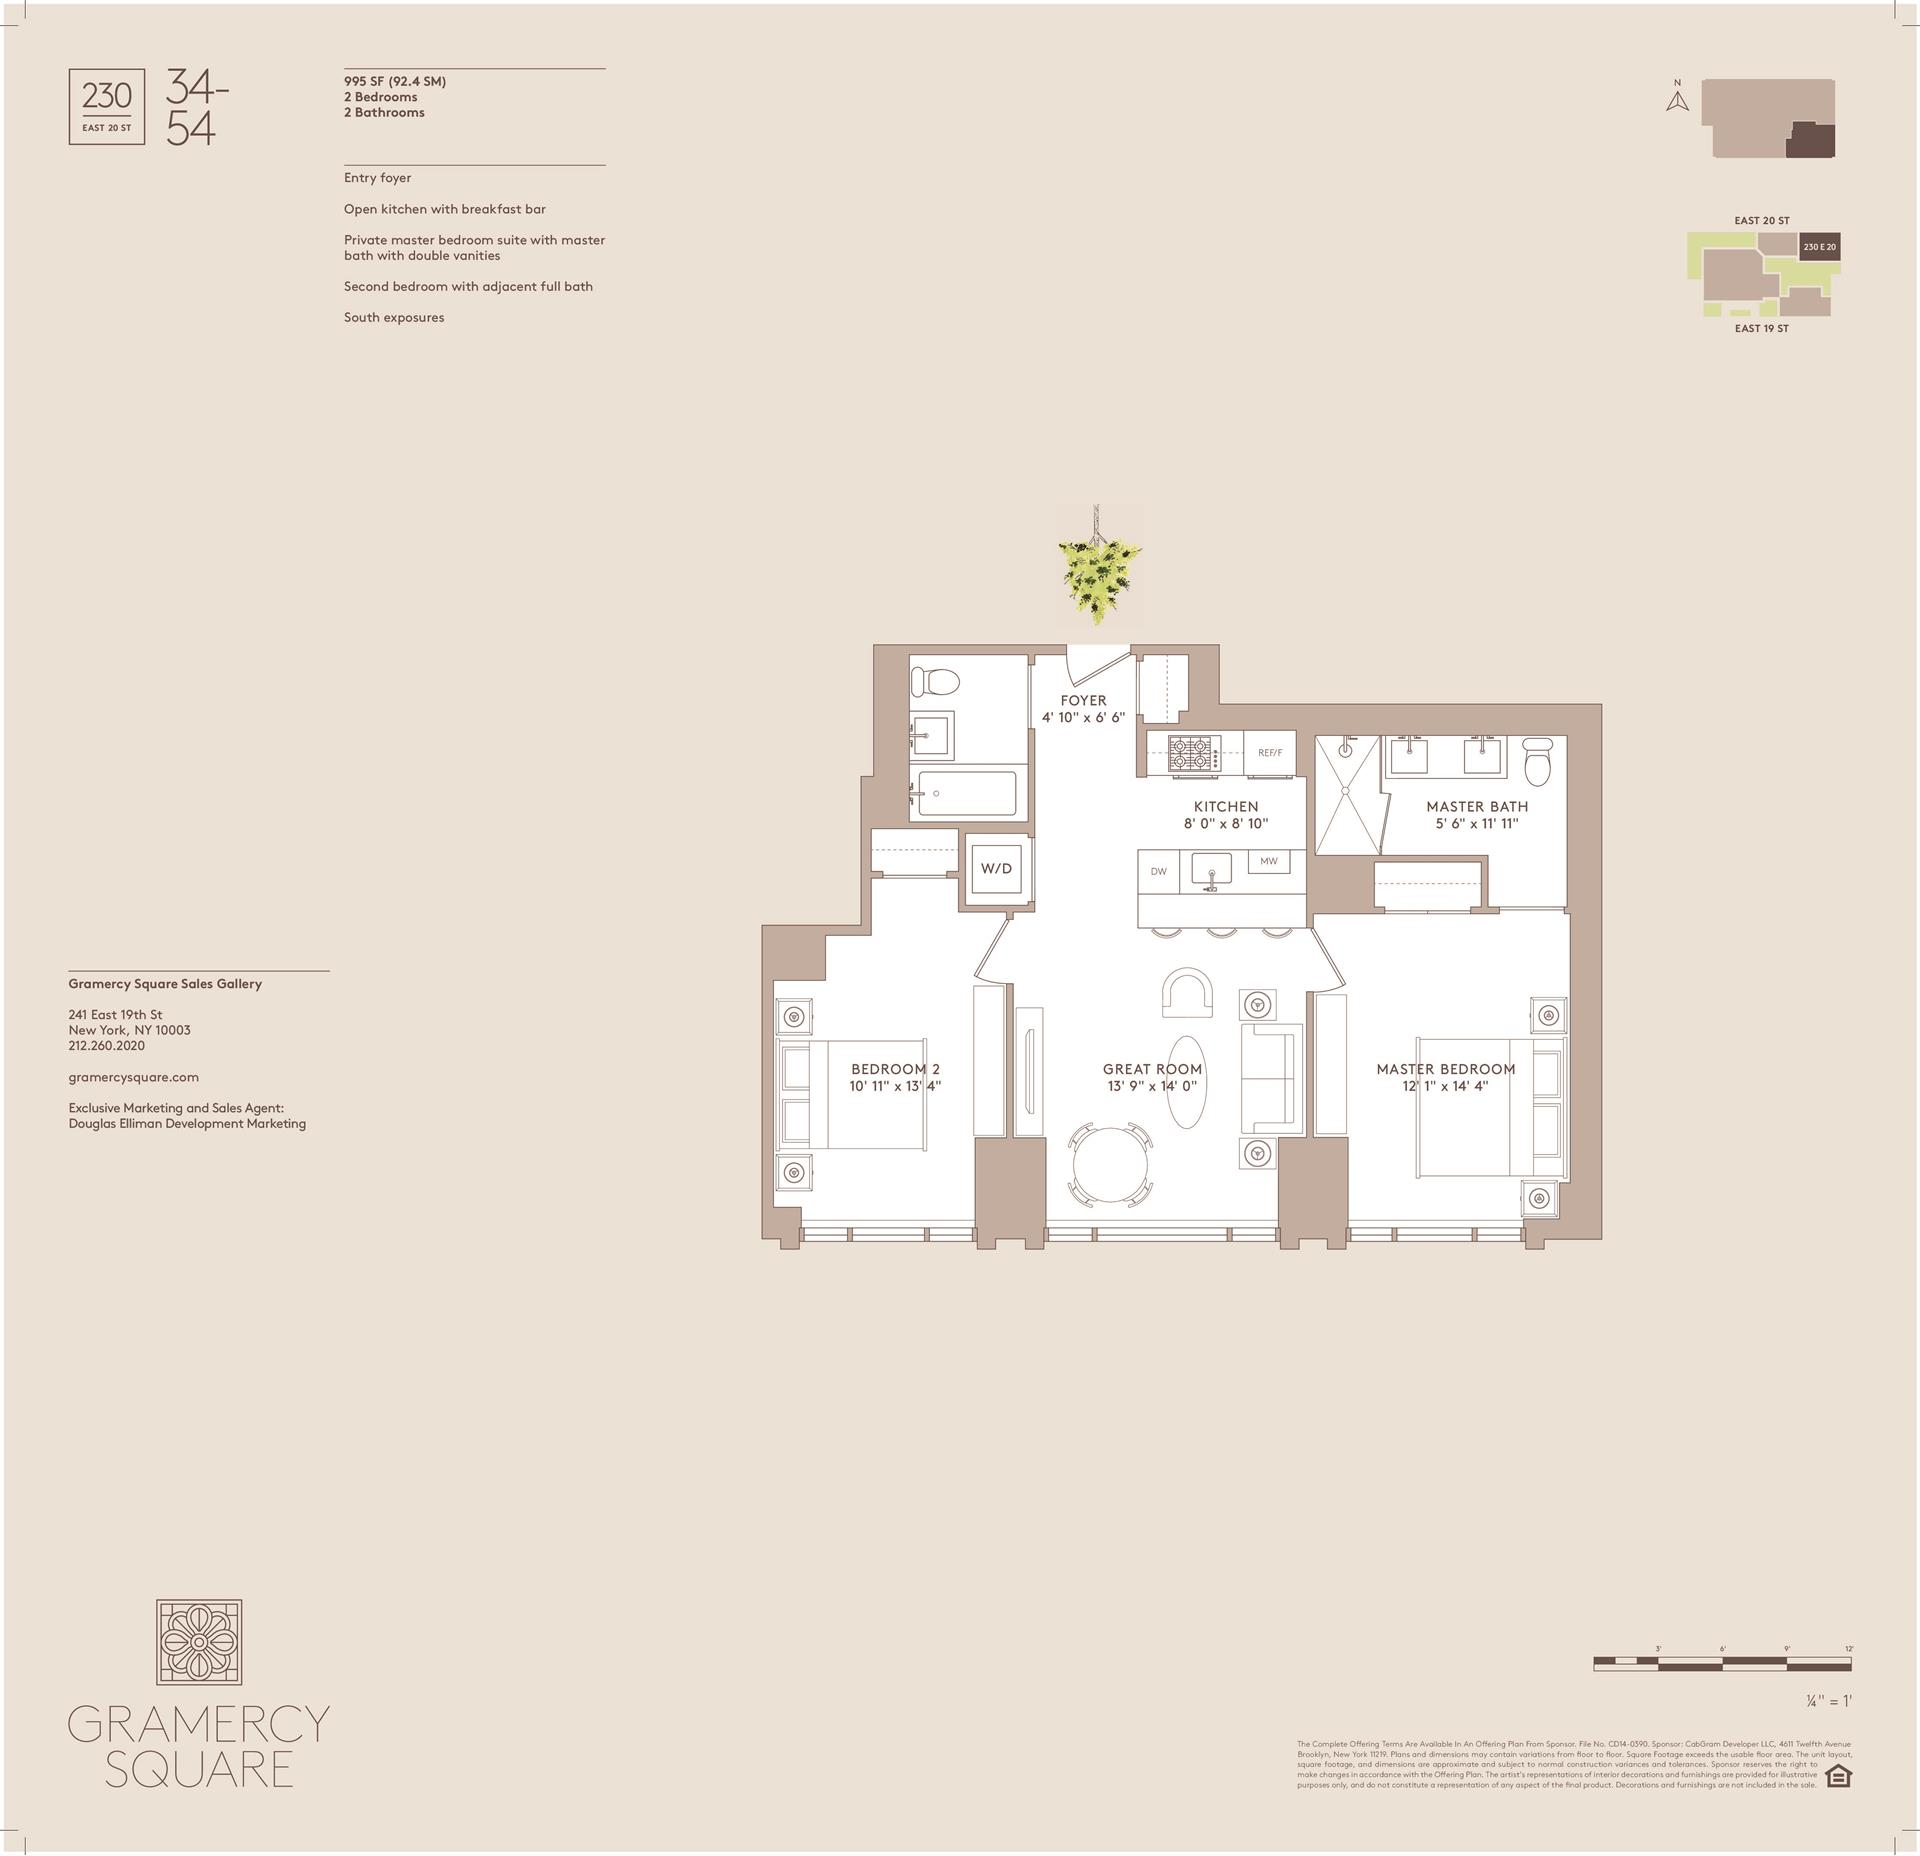 Floor plan of Gramercy Square, 230 East 20th St, 34 - Gramercy - Union Square, New York